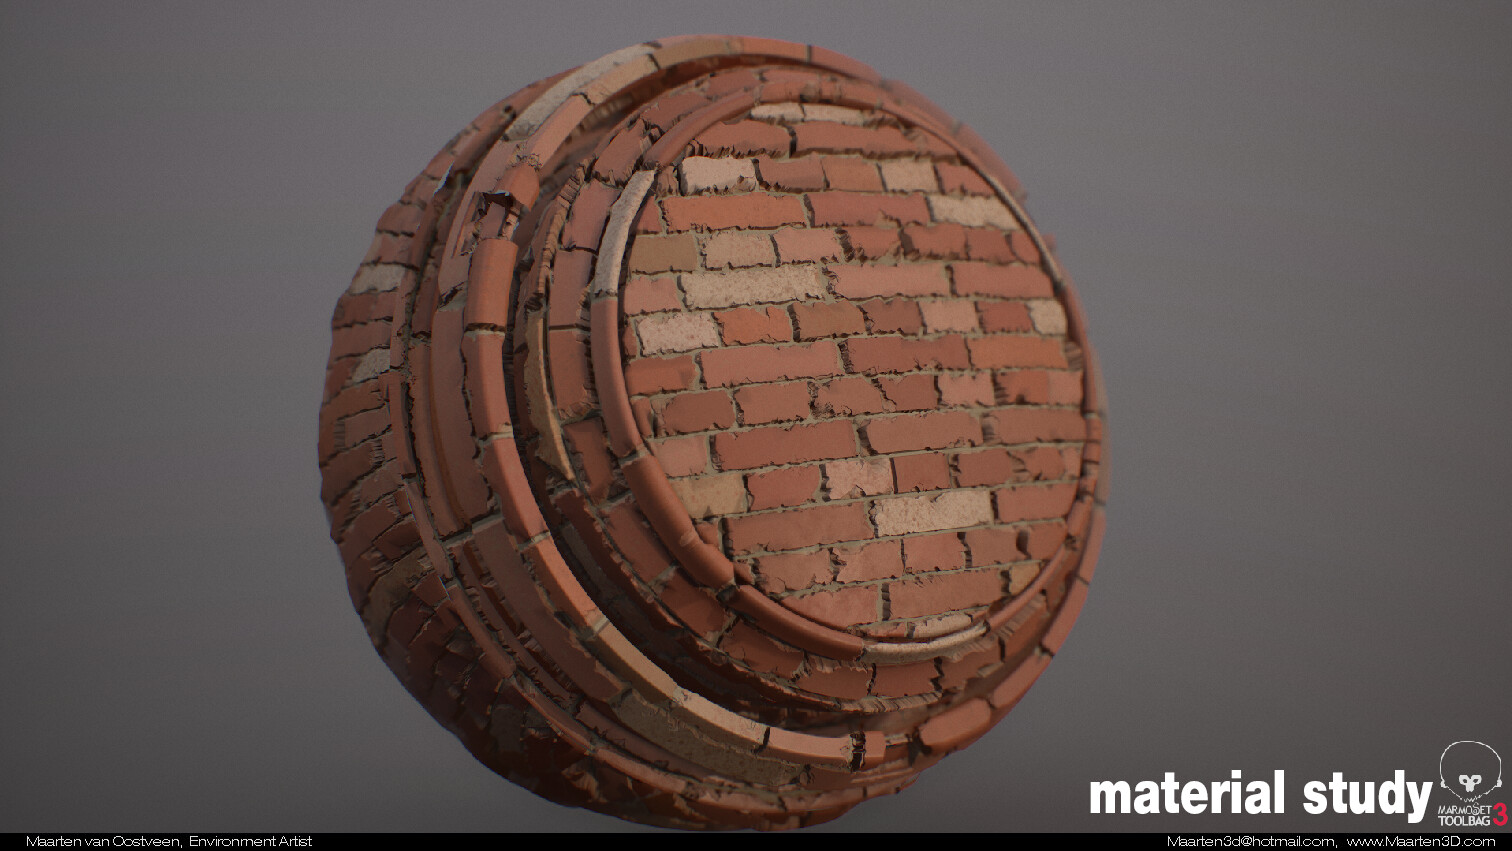 Material Study